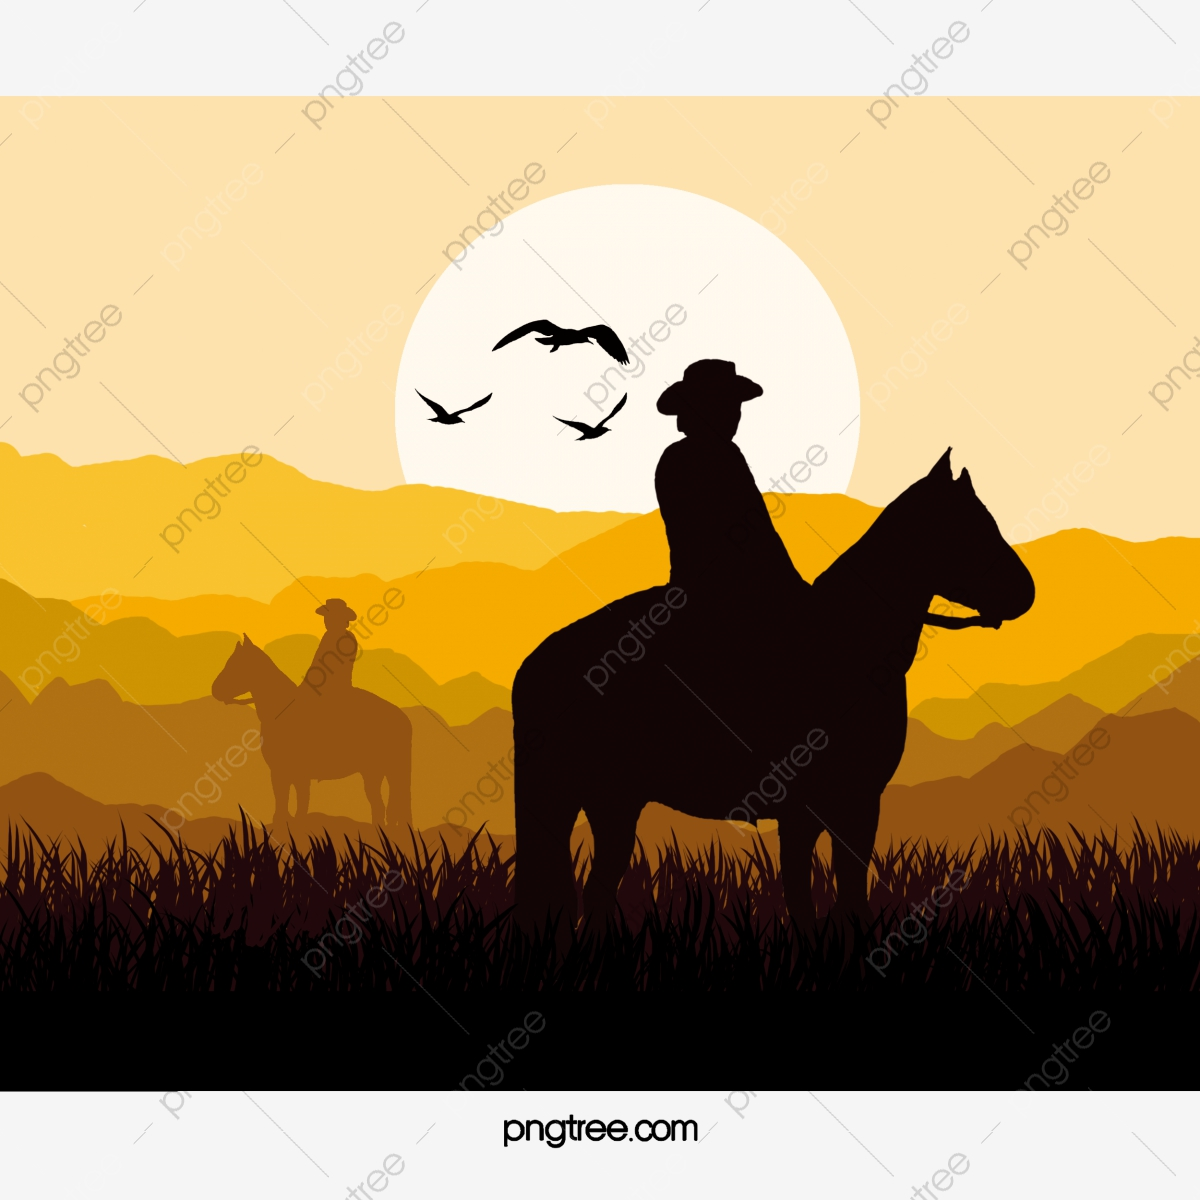 A wild west background Royalty Free Vector Image